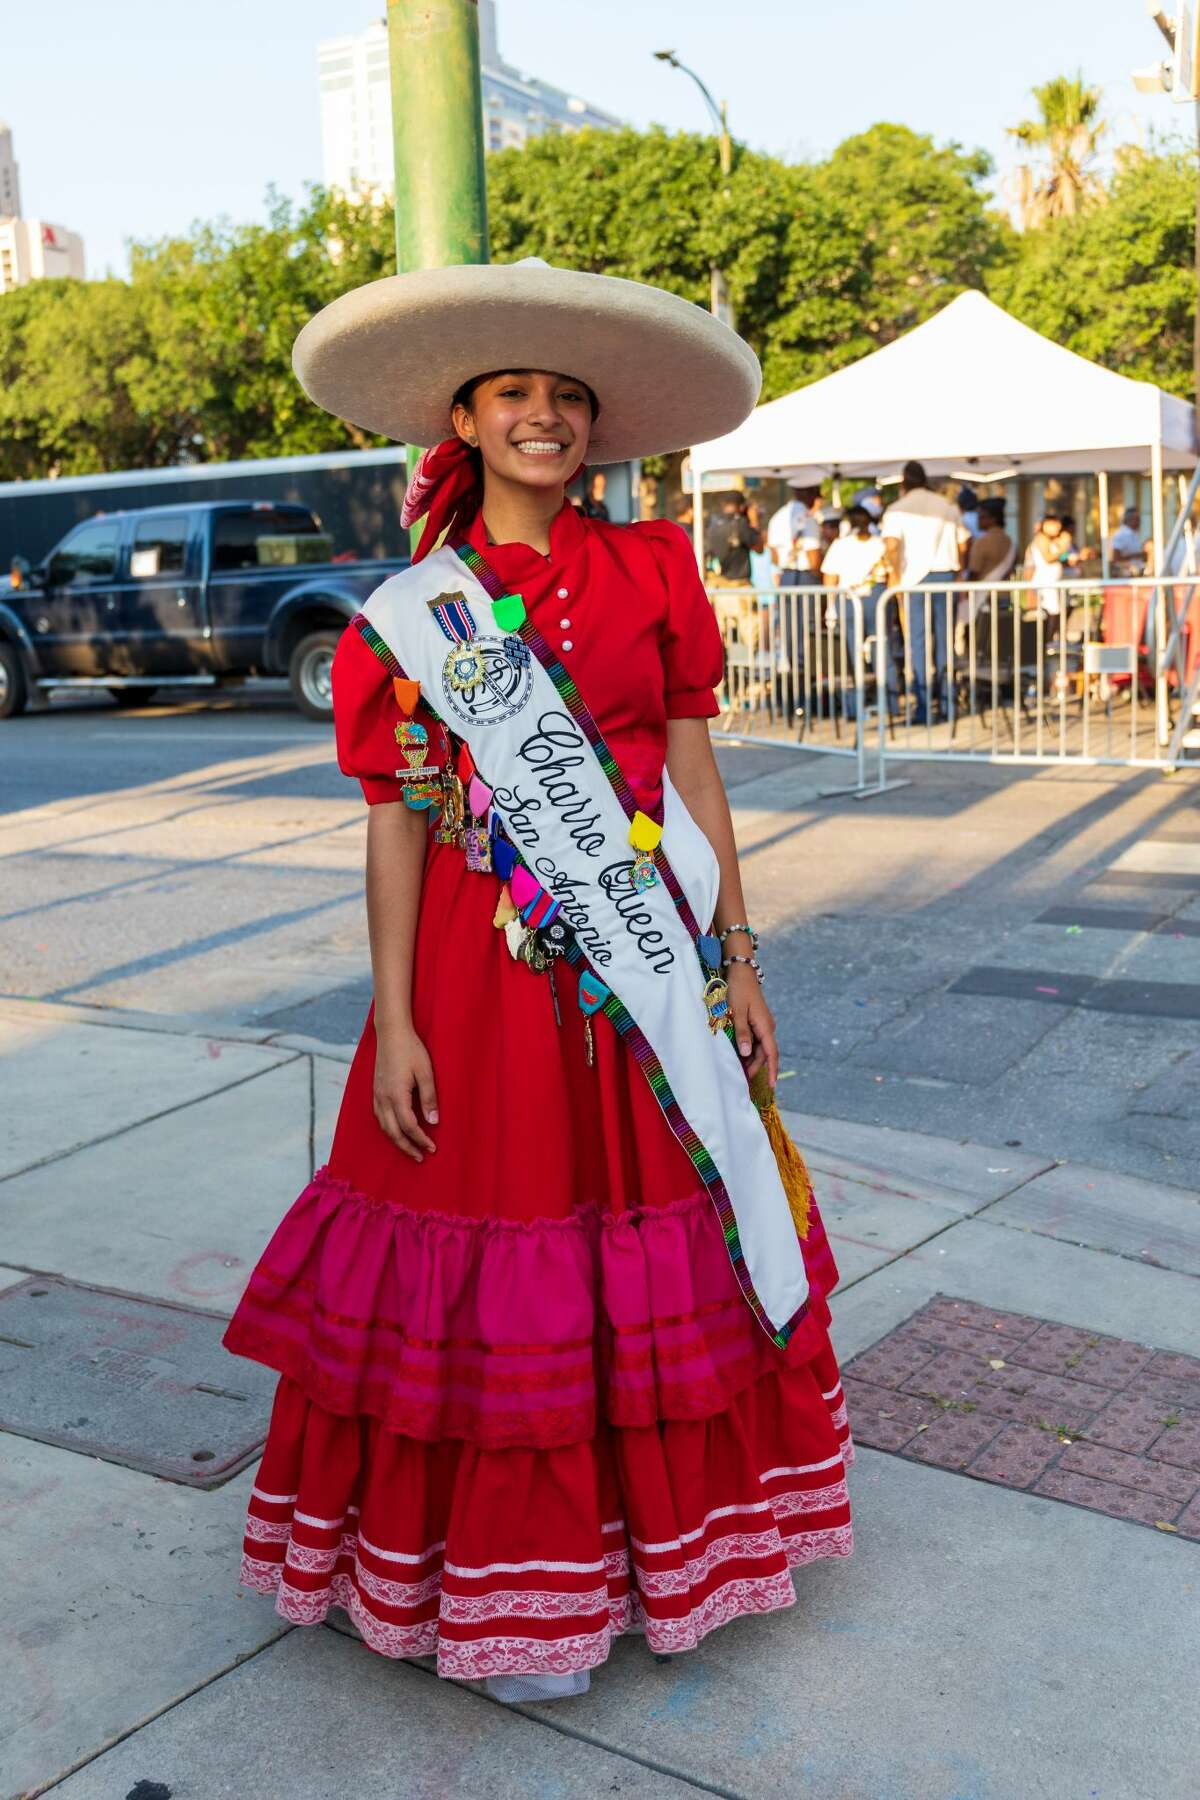 San Antonians came out to ¡viva Fiesta baby! at the annual Hemisfair kick-off event, Fiesta Fiesta on Thursday, June 17, 2021.